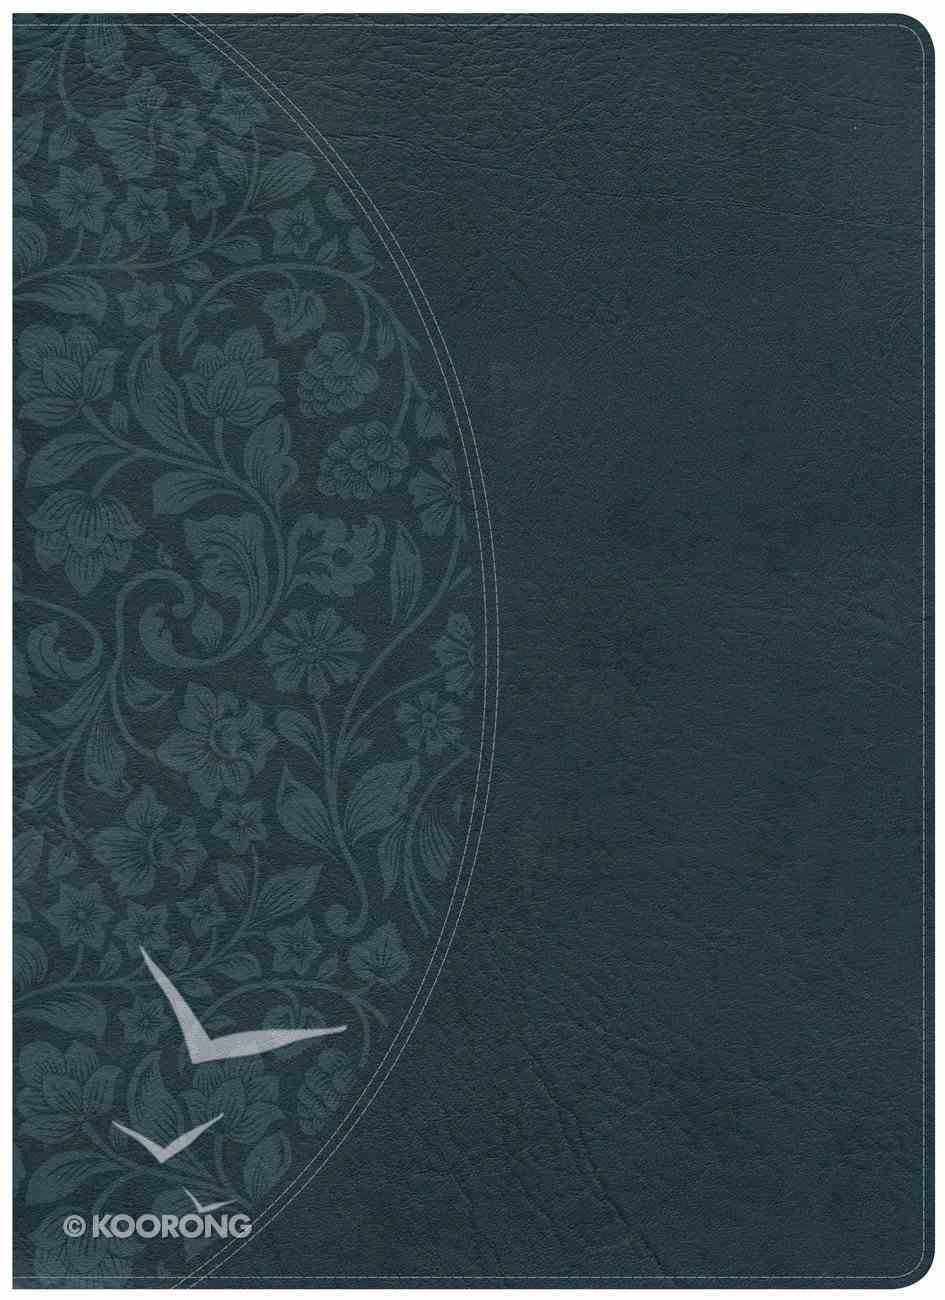 KJV Large Print Study Bible Dark Teal Imitation Leather